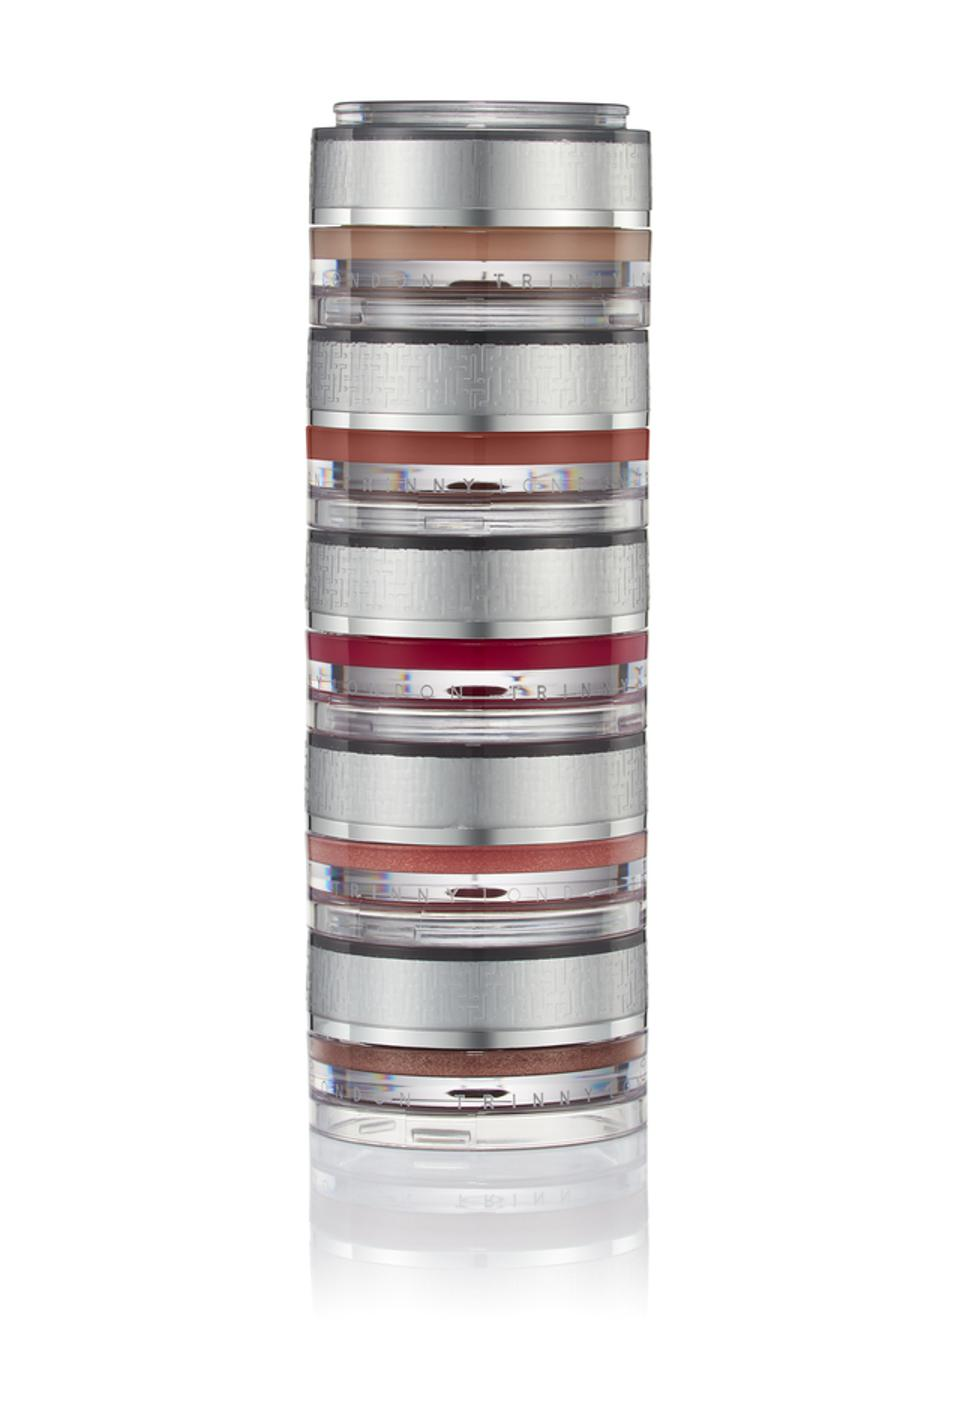 A stack of TRINNY LONDON makeup jars.